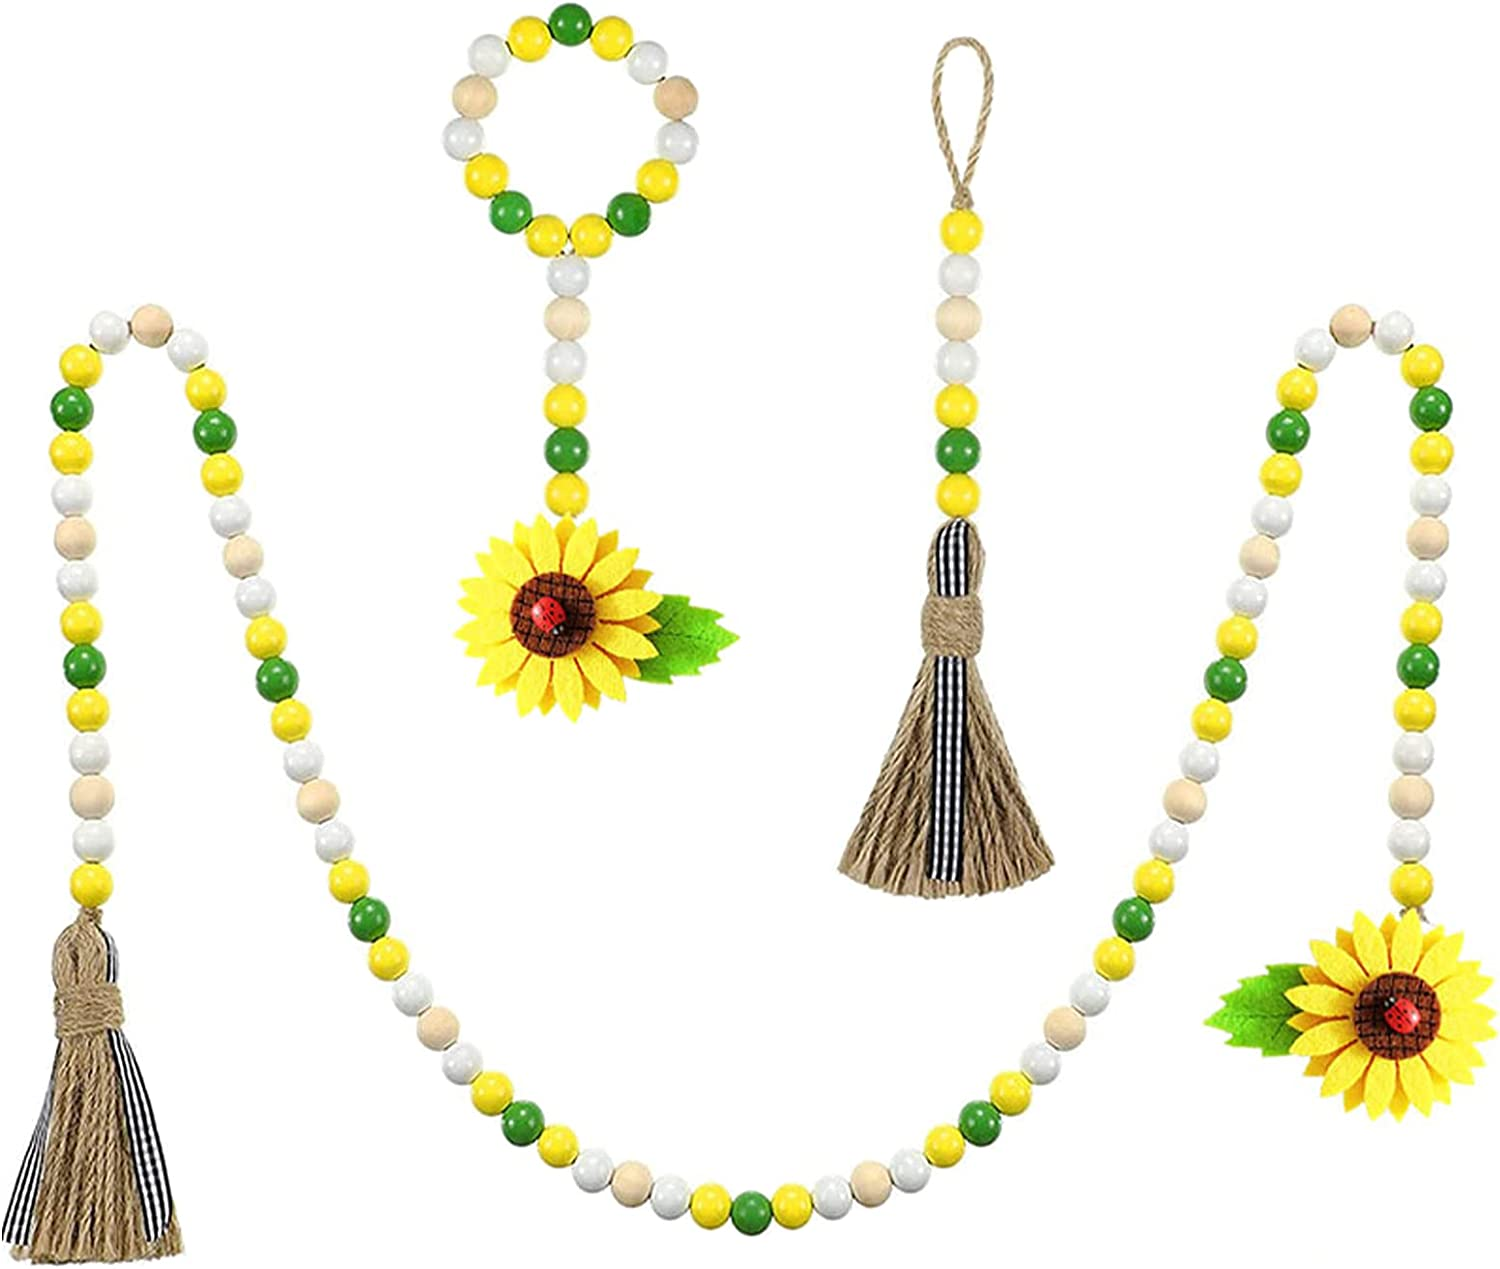 HODUP 3Pcs Wood Bead Animer and price revision Garland Tassels W Farmhouse Sunflower 55% OFF with